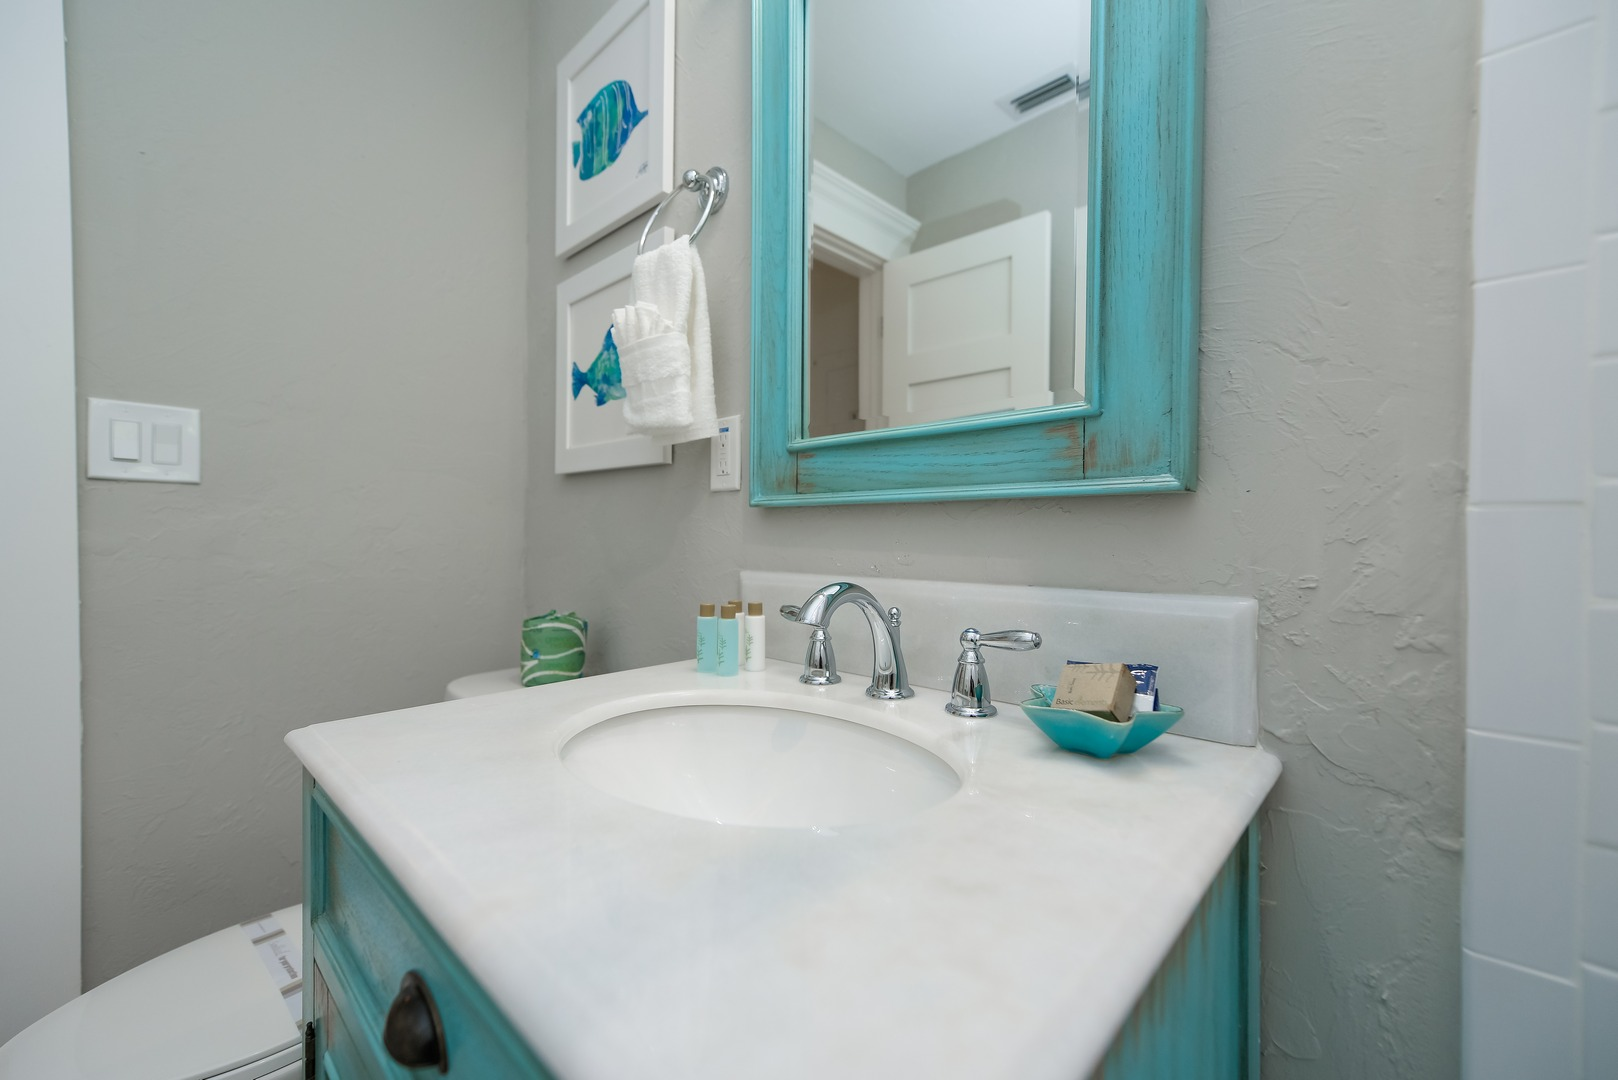 Vanity with Distressed Mirror to Match